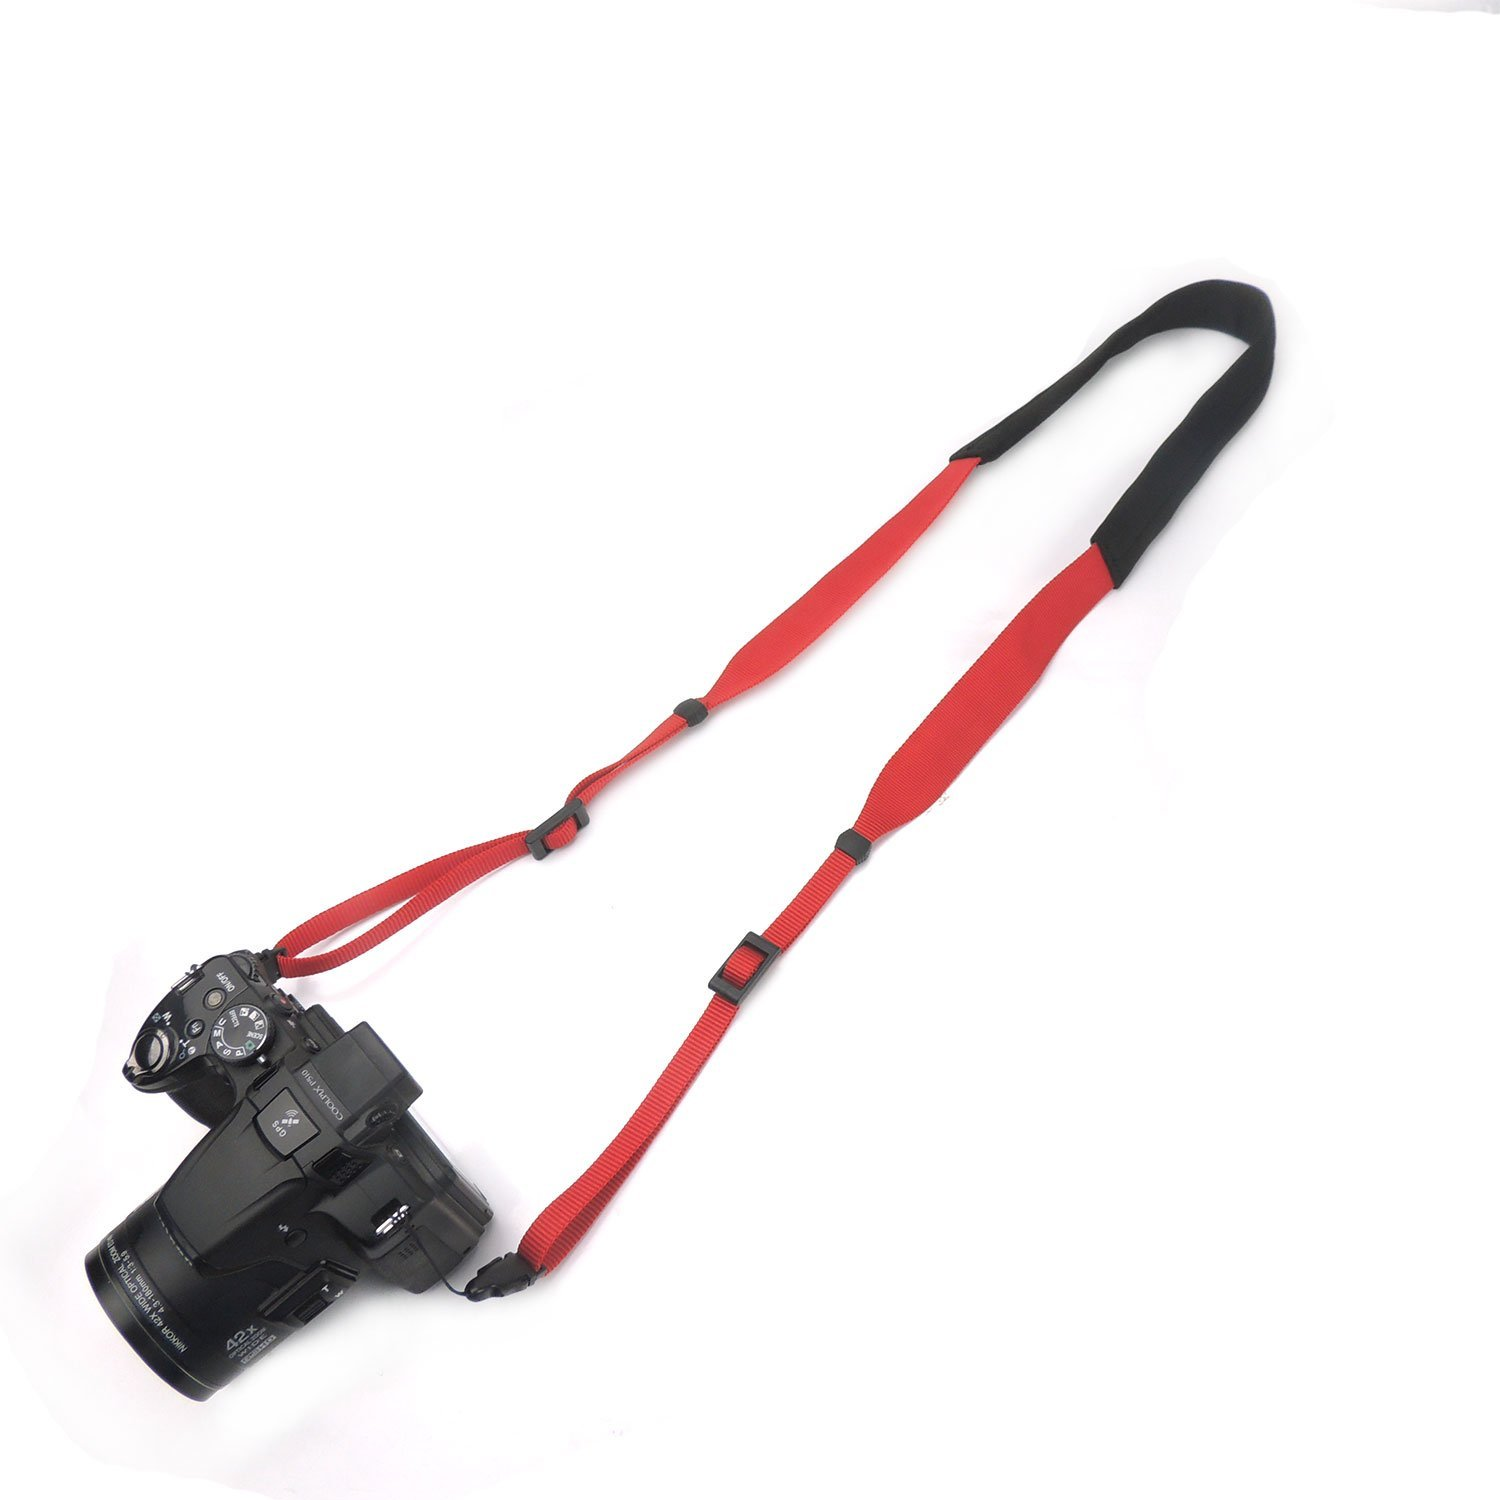 CHMETE Specially Design for Summer Can Be Washed Camera Neck Strap (Red)